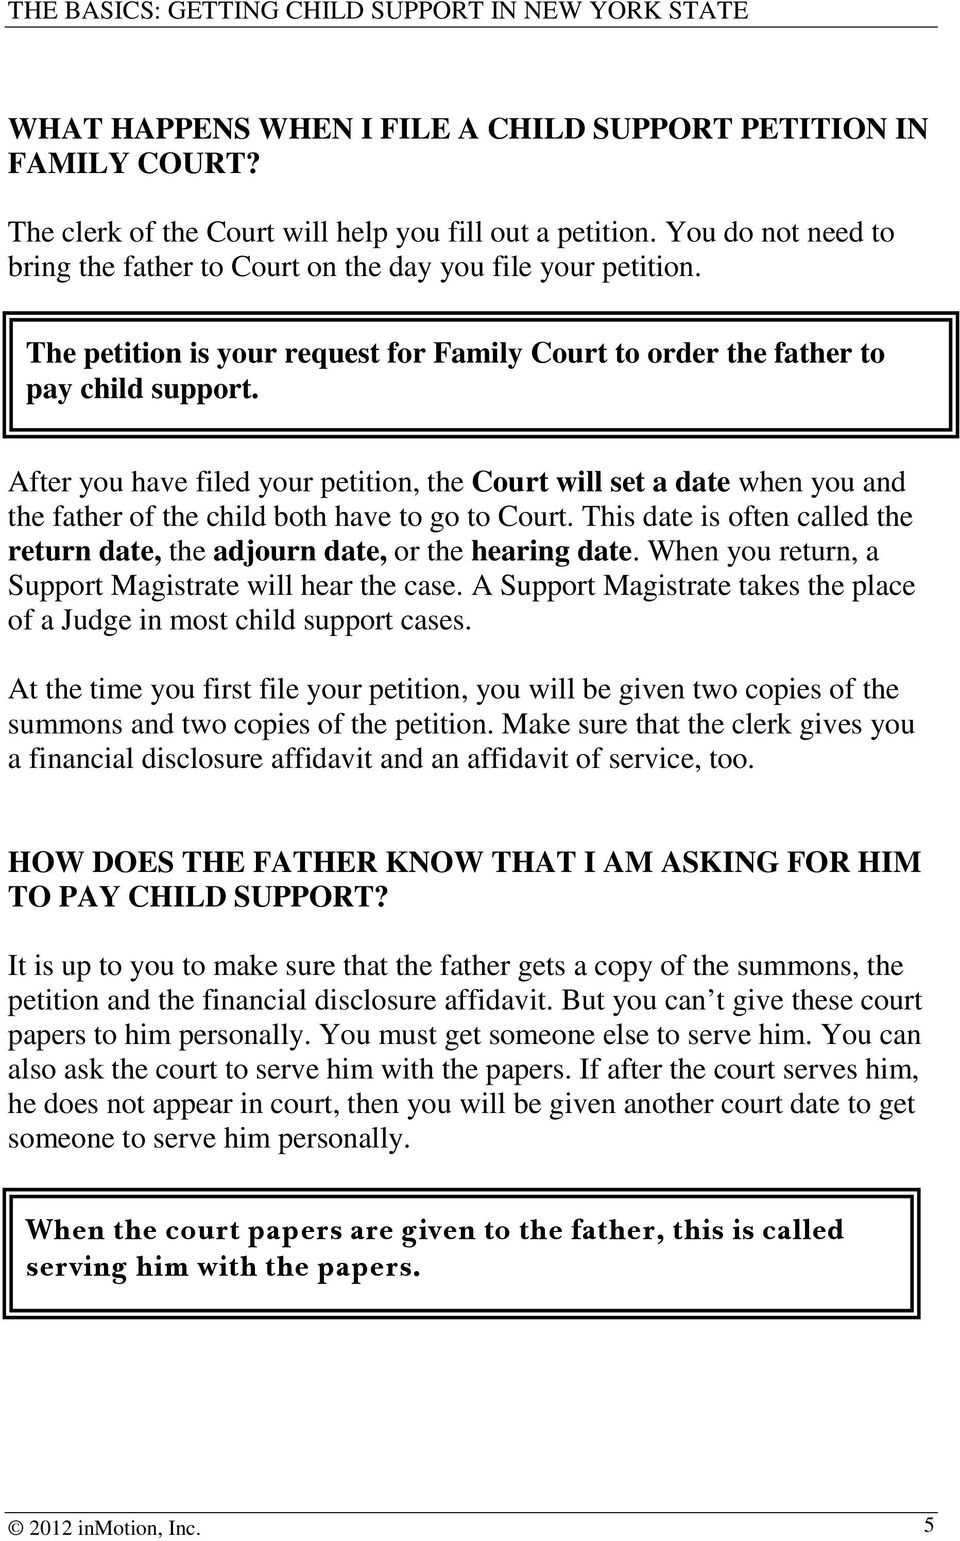 After you have filed your petition, the Court will set a date when you and the father of the child both have to go to Court.